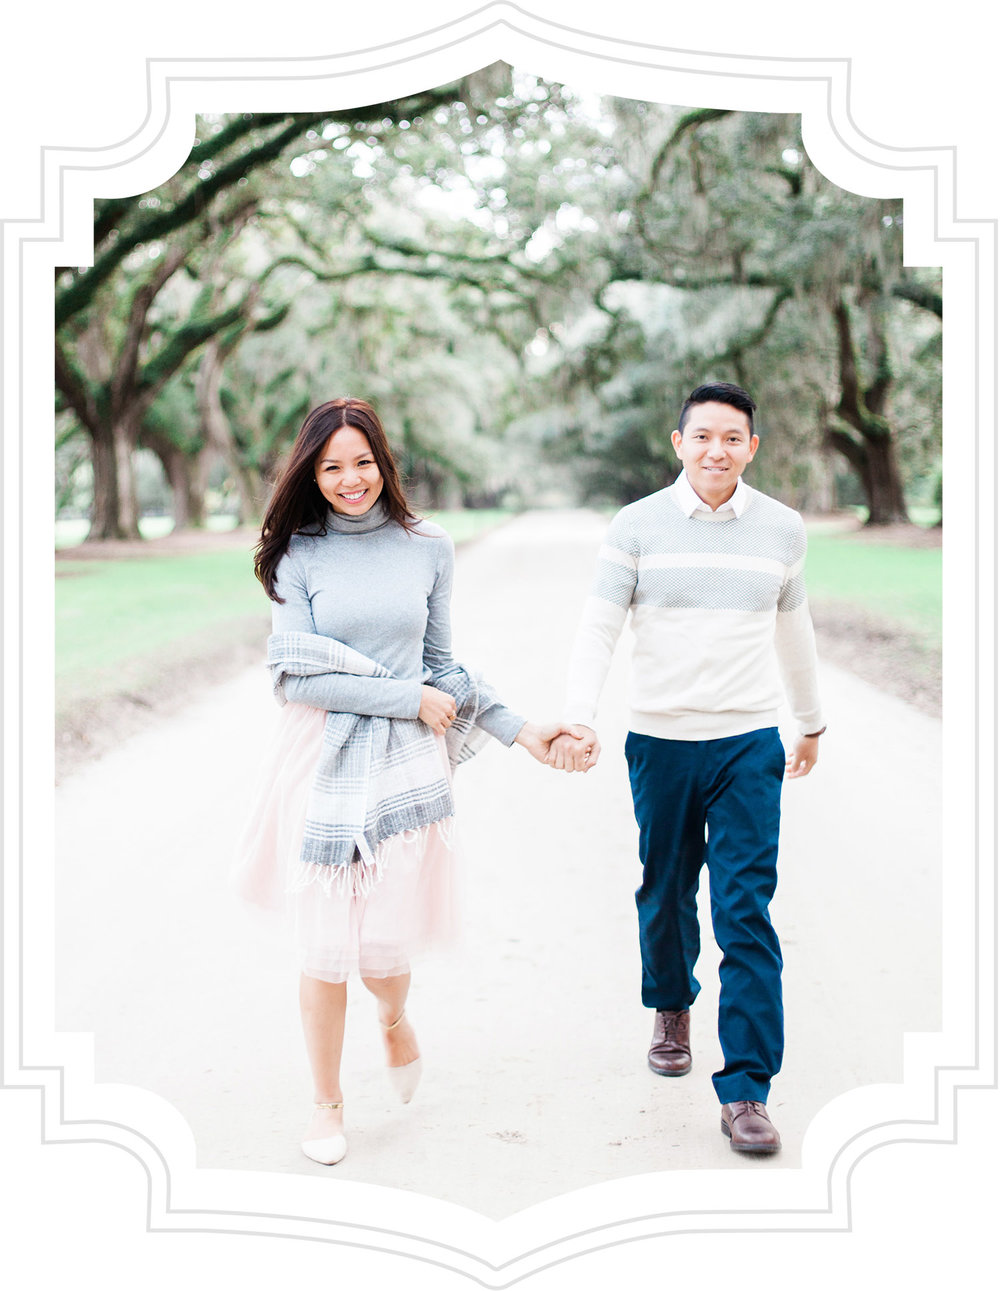 """- Jenny Soi Photography - """"JUDY IS SUCH A WARM AND TALENTED ARTIST! AS A WEDDING INDUSTRY PROFESSIONAL MYSELF, I WAS SO EXTREMELY IMPRESSED BY HER ARTISTRY AND THE OVERALL EXPERIENCE SHE PROVIDED FOR MY BOYFRIEND AND I...... JUDY WAS EXTREMELY WARM, CARING, AND EASY TO TALK TO. I CANNOT RECOMMEND HER ENOUGH, I PROMISE SHE'LL BE YOUR FAVORITE VENDOR!"""""""